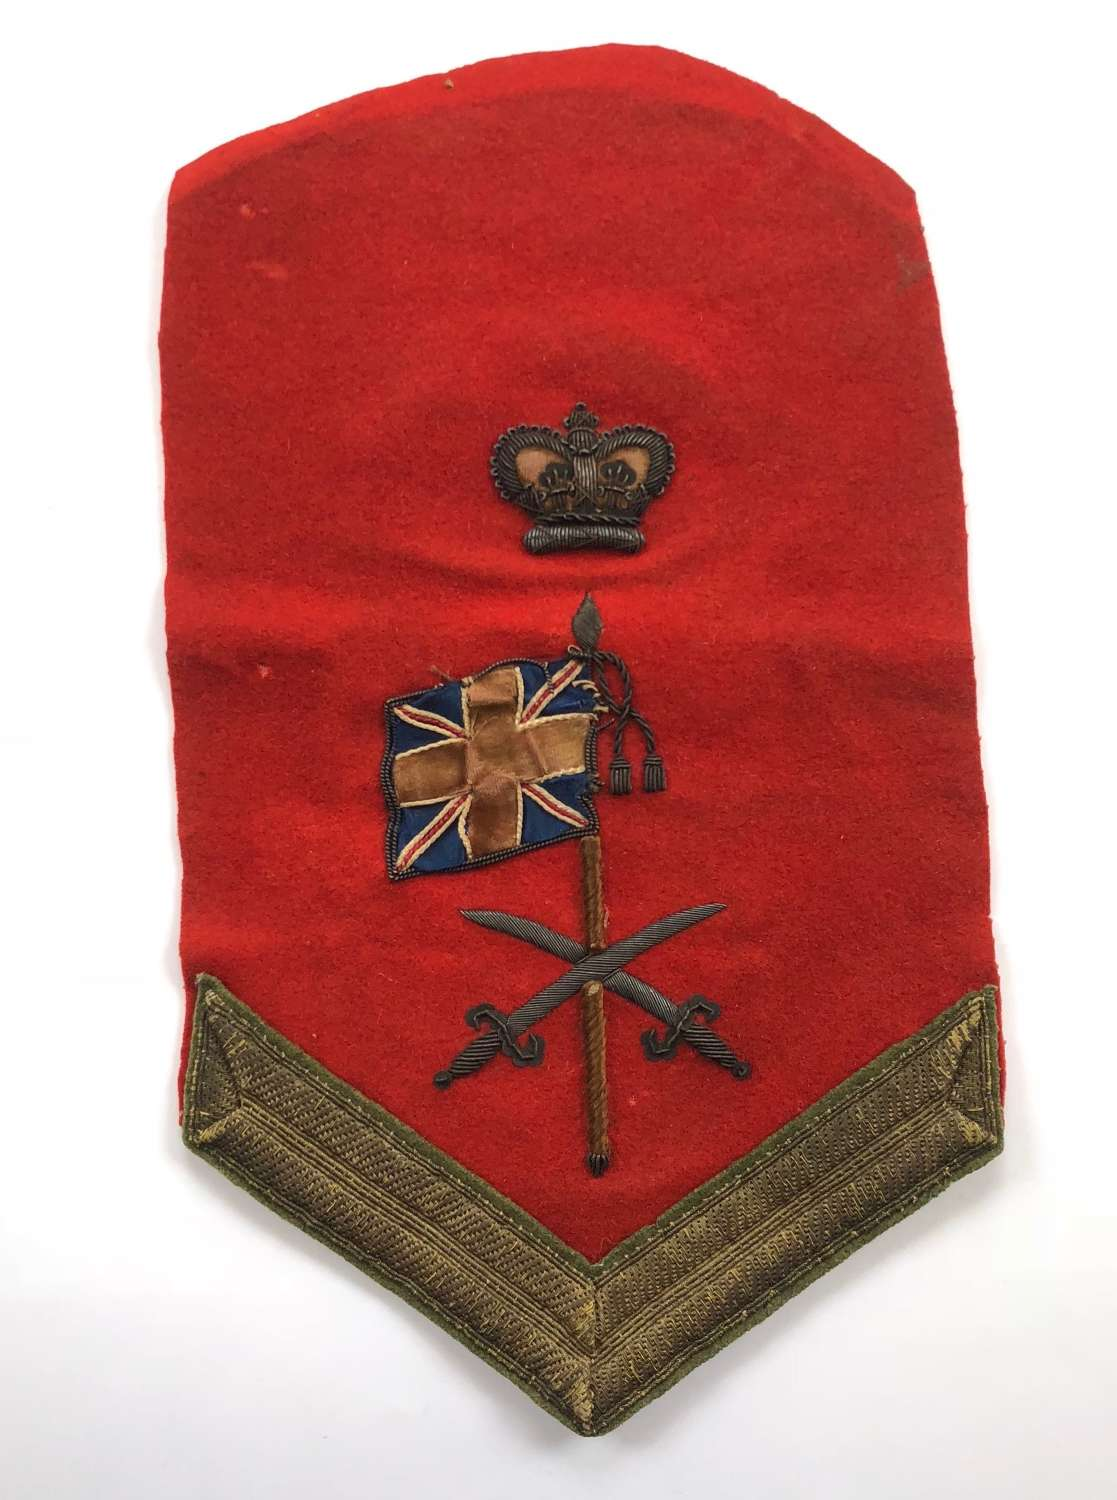 Infantry of the Line Colour Sergeant's 'Waterloo' pattern rank badge